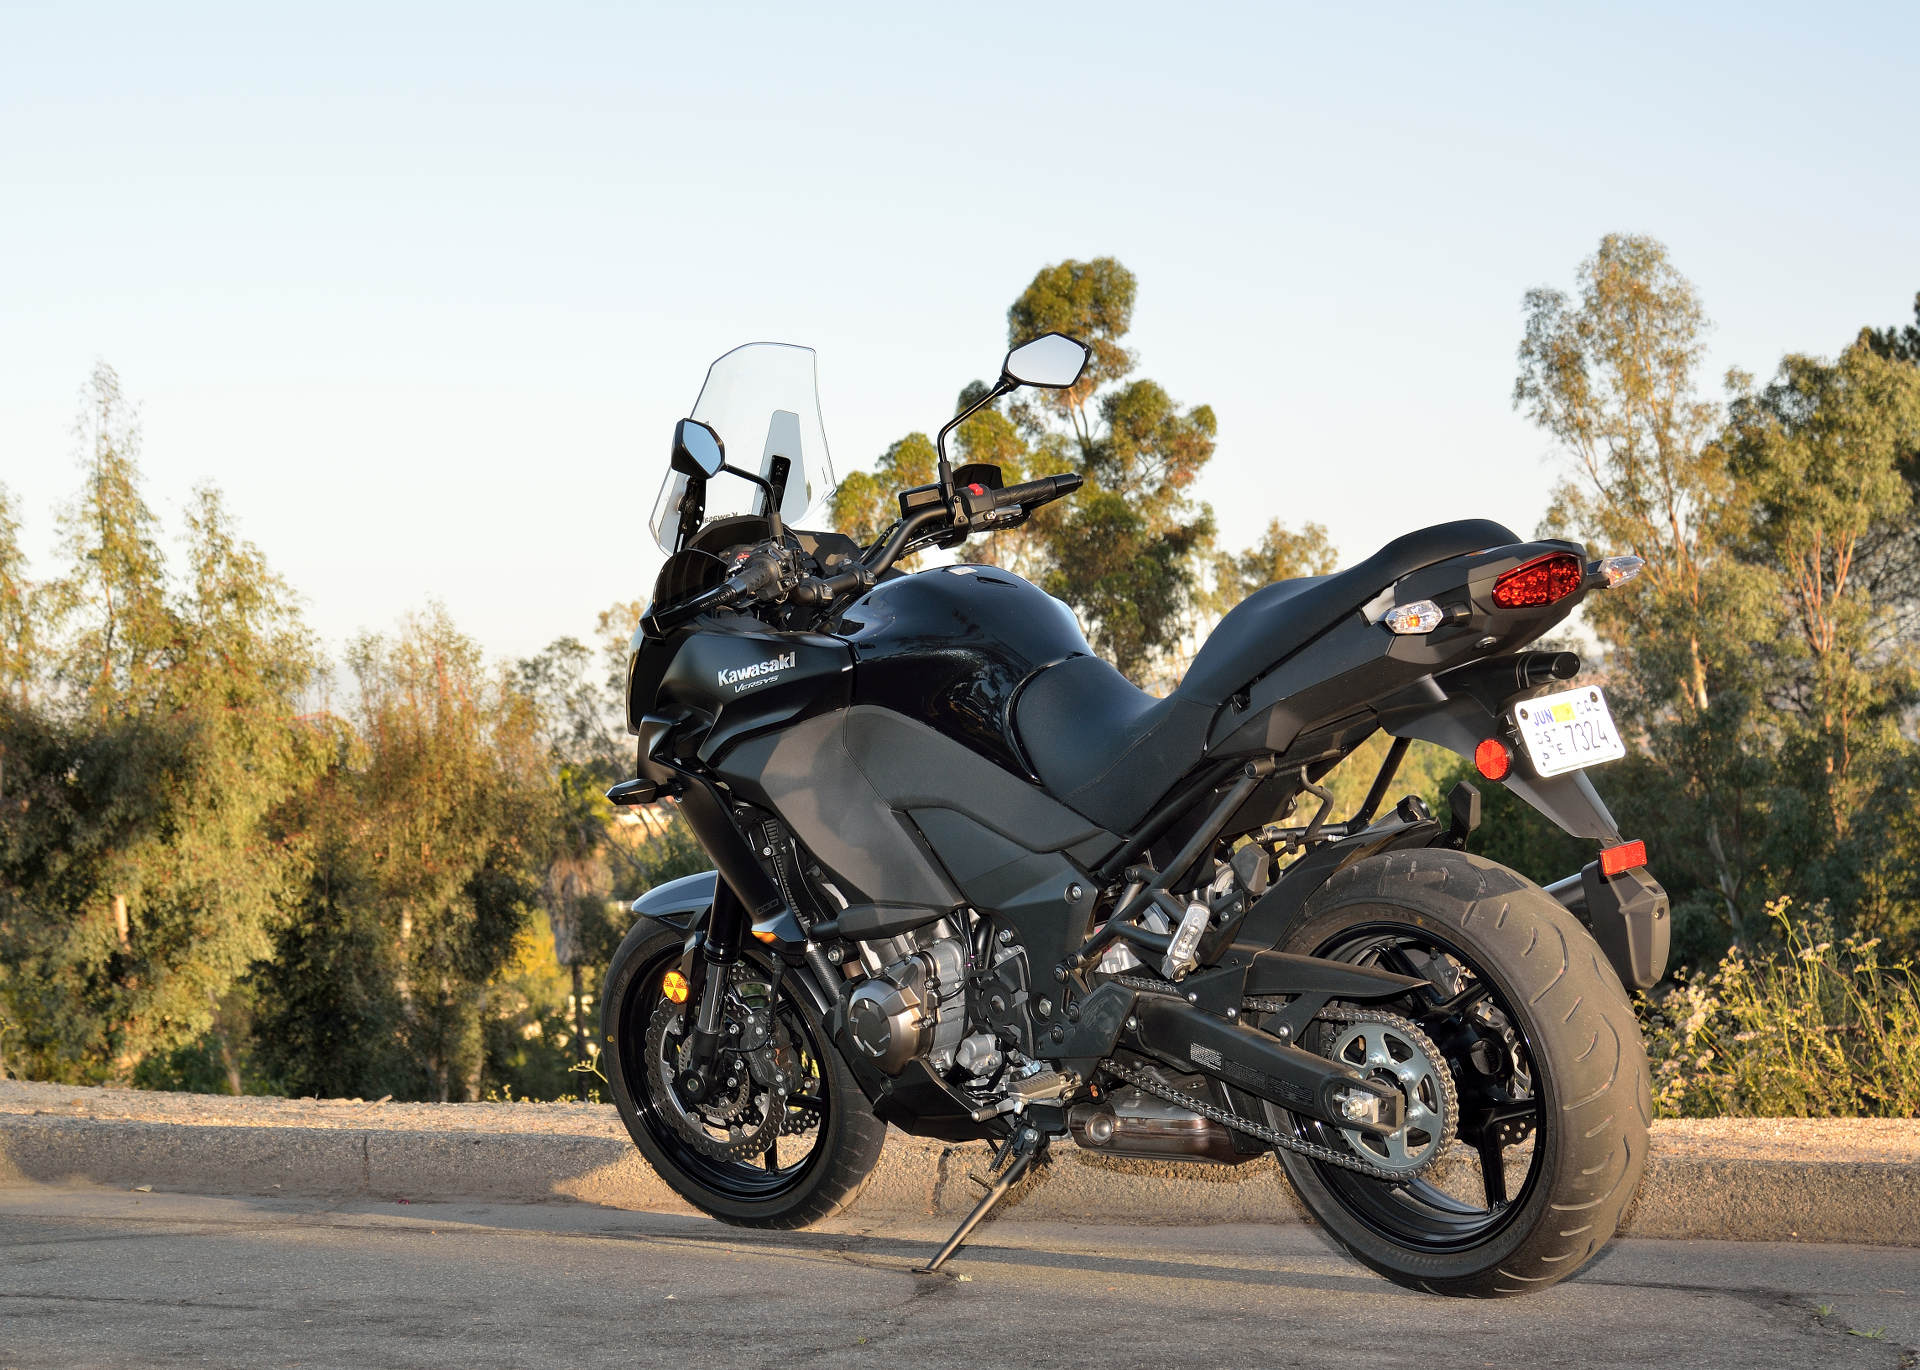 2015 kawasaki versys 1000 lt md ride review motorcycle news editorials. Black Bedroom Furniture Sets. Home Design Ideas